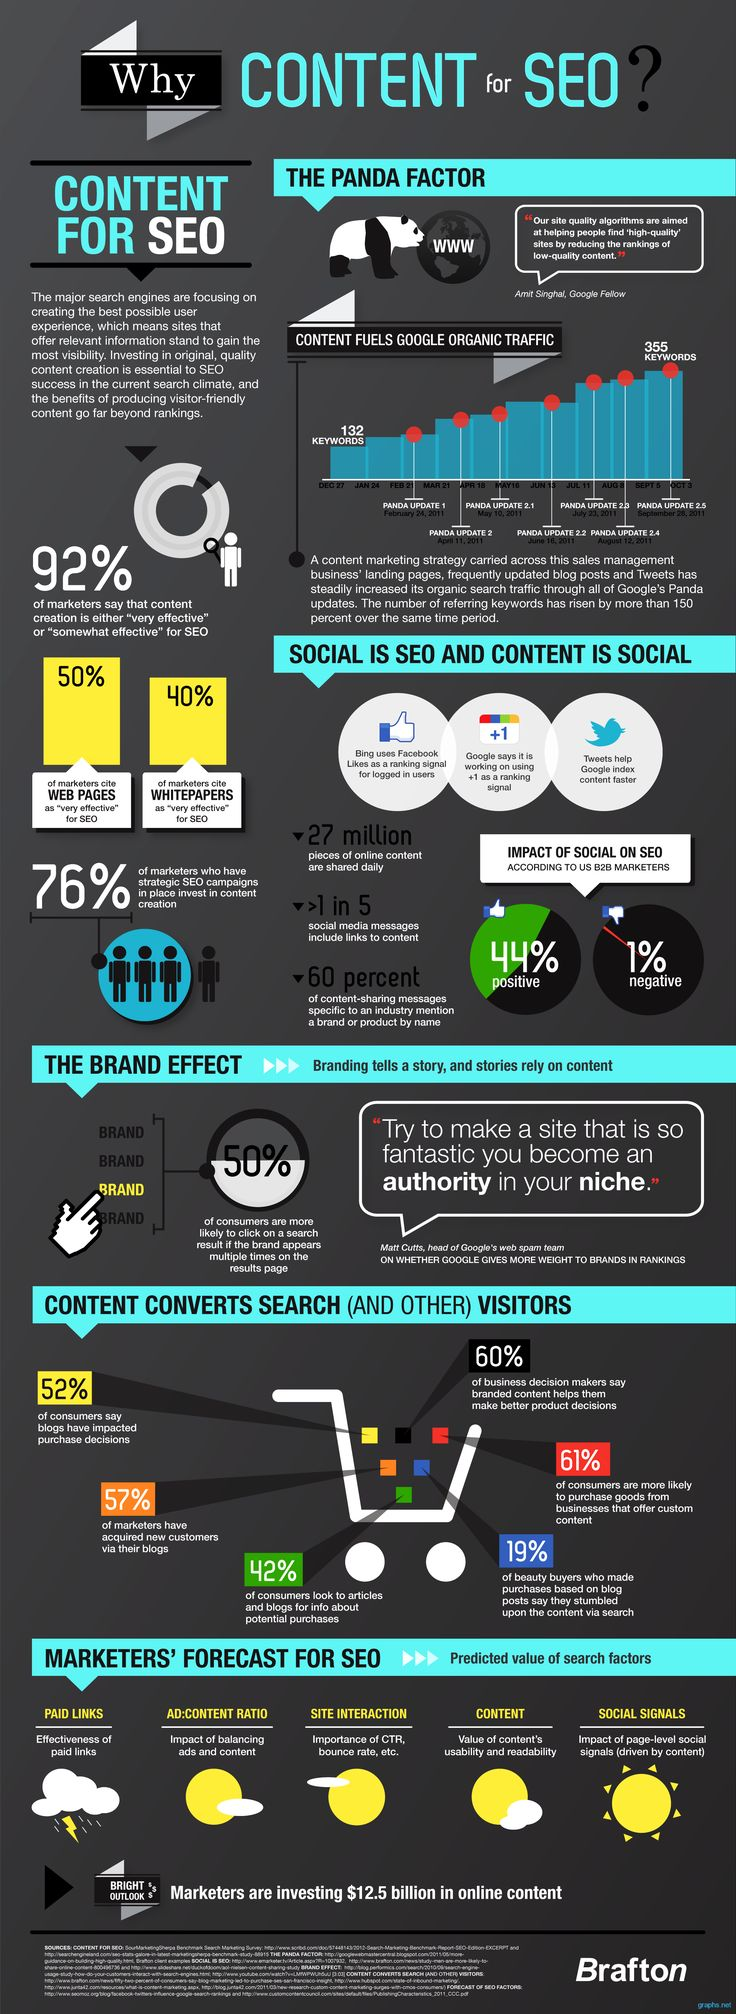 Content marketing strategy is the main focus of marketers today. The following infographic shows the importance of content for SEO of your website.